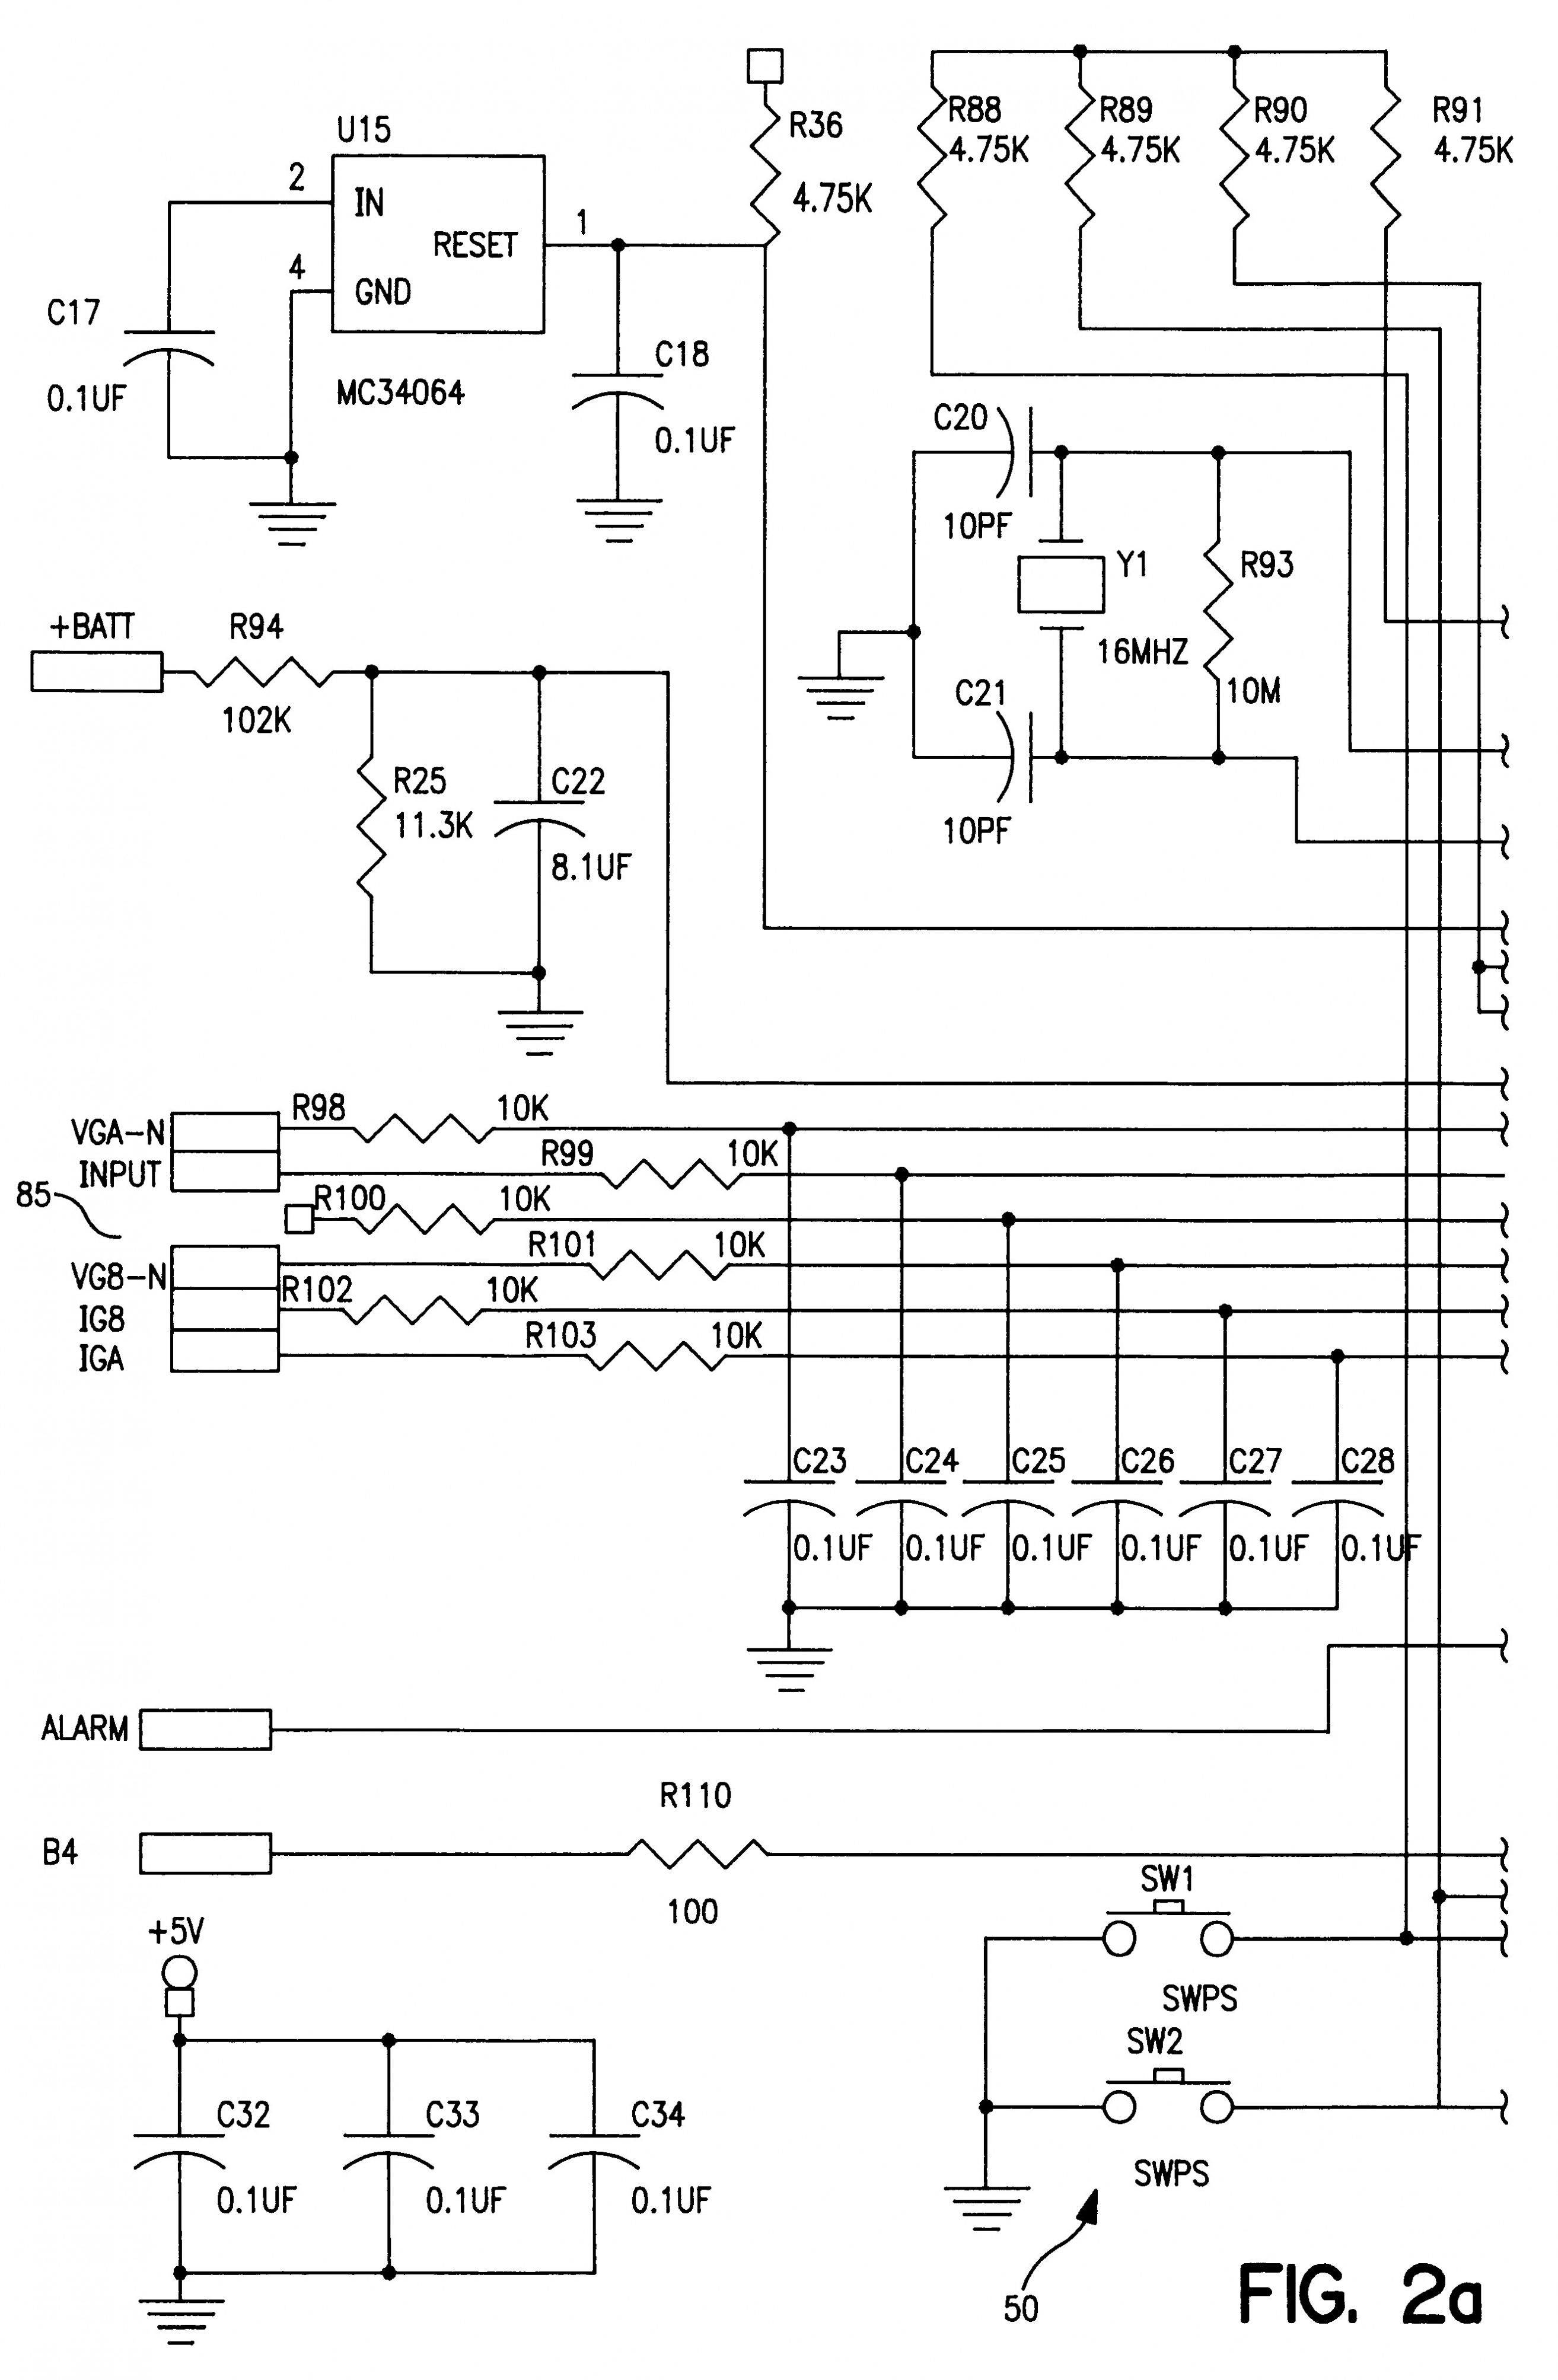 Wiring Diagrams For Transfer Switches | Wiring Diagram - Transfer Switch Wiring Diagram